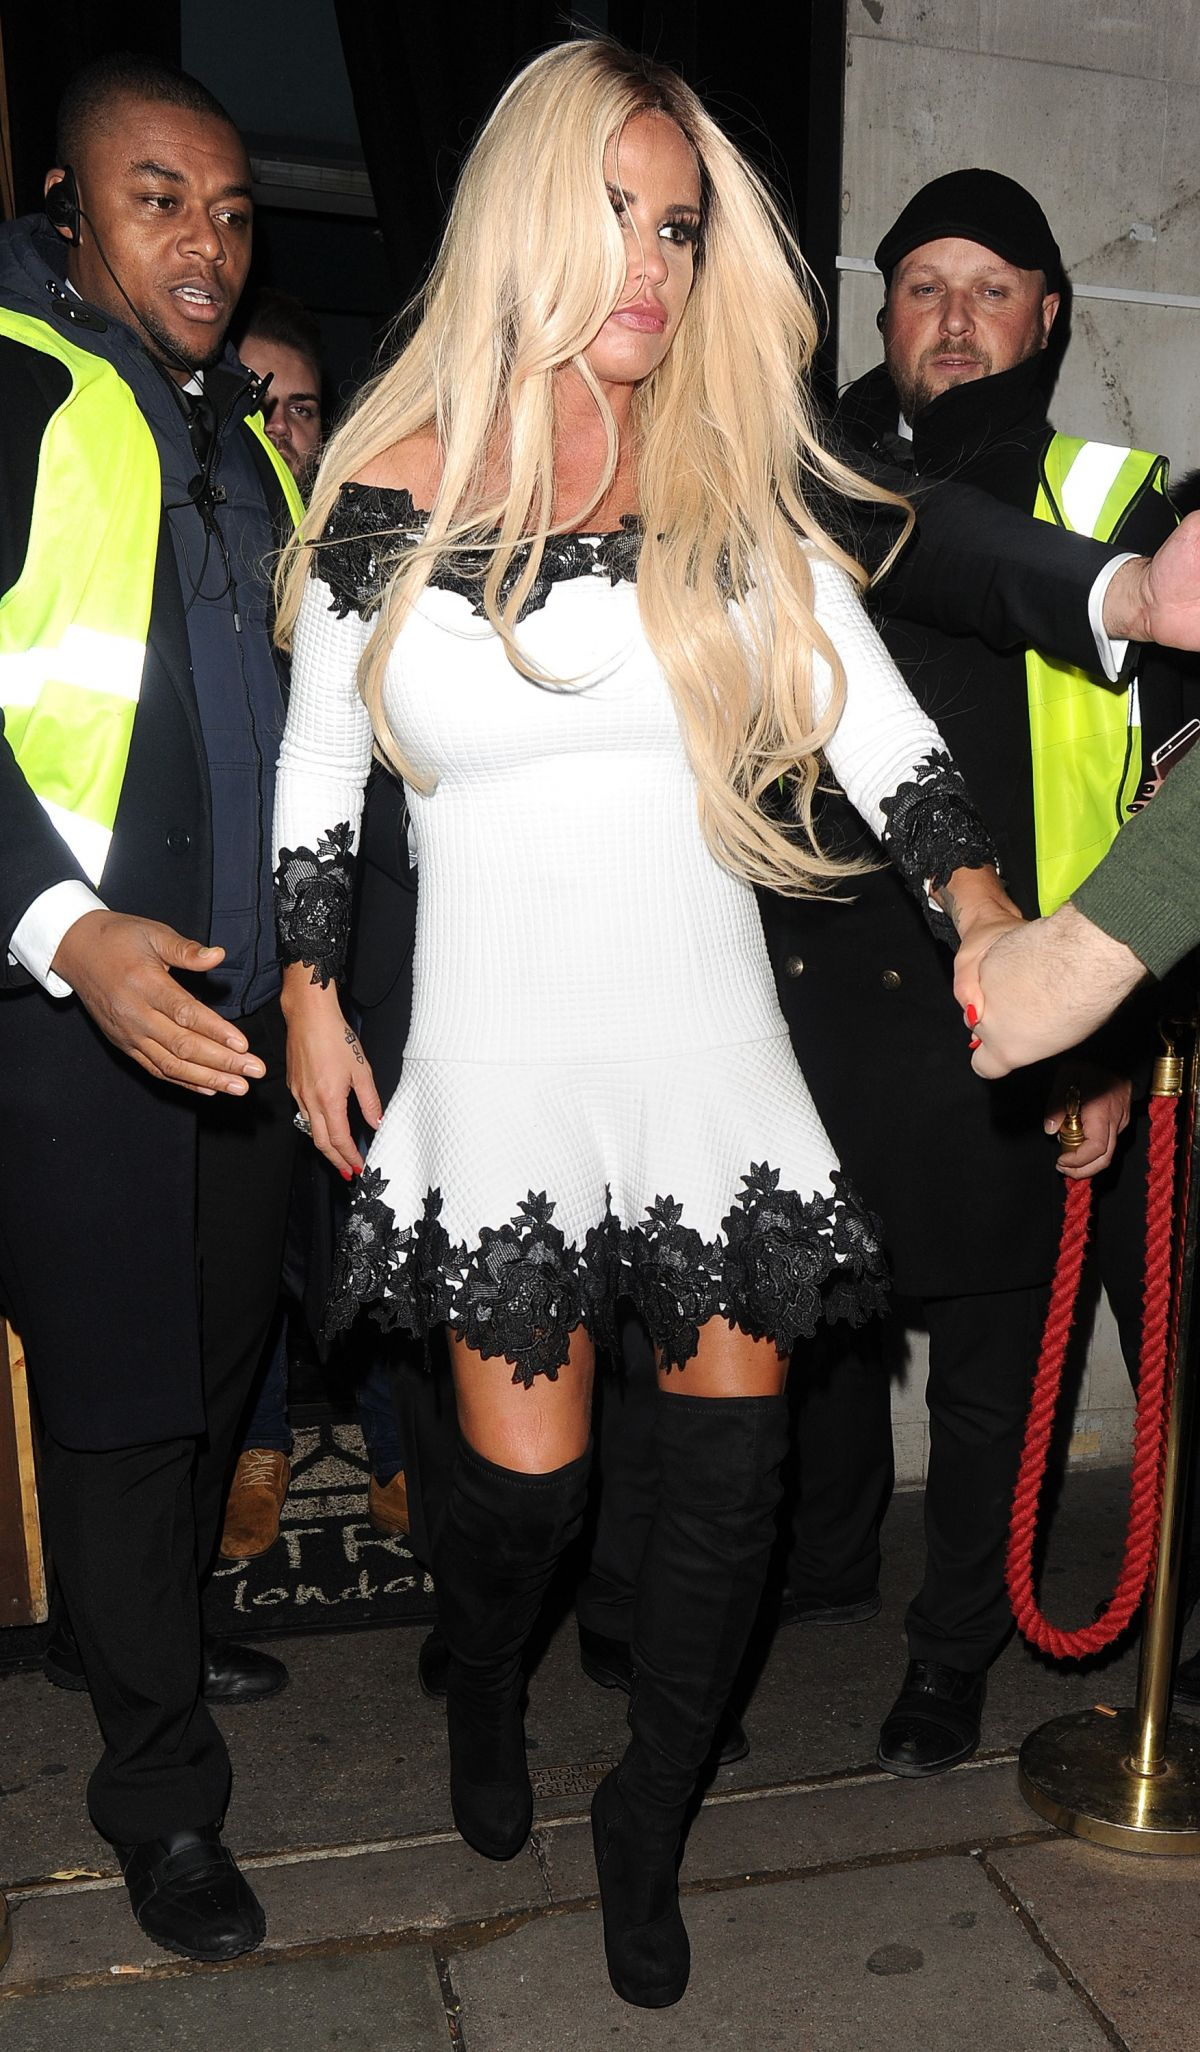 Katie Price Out for the evening in London   katie-price-out-for-the-evening-in-london_6